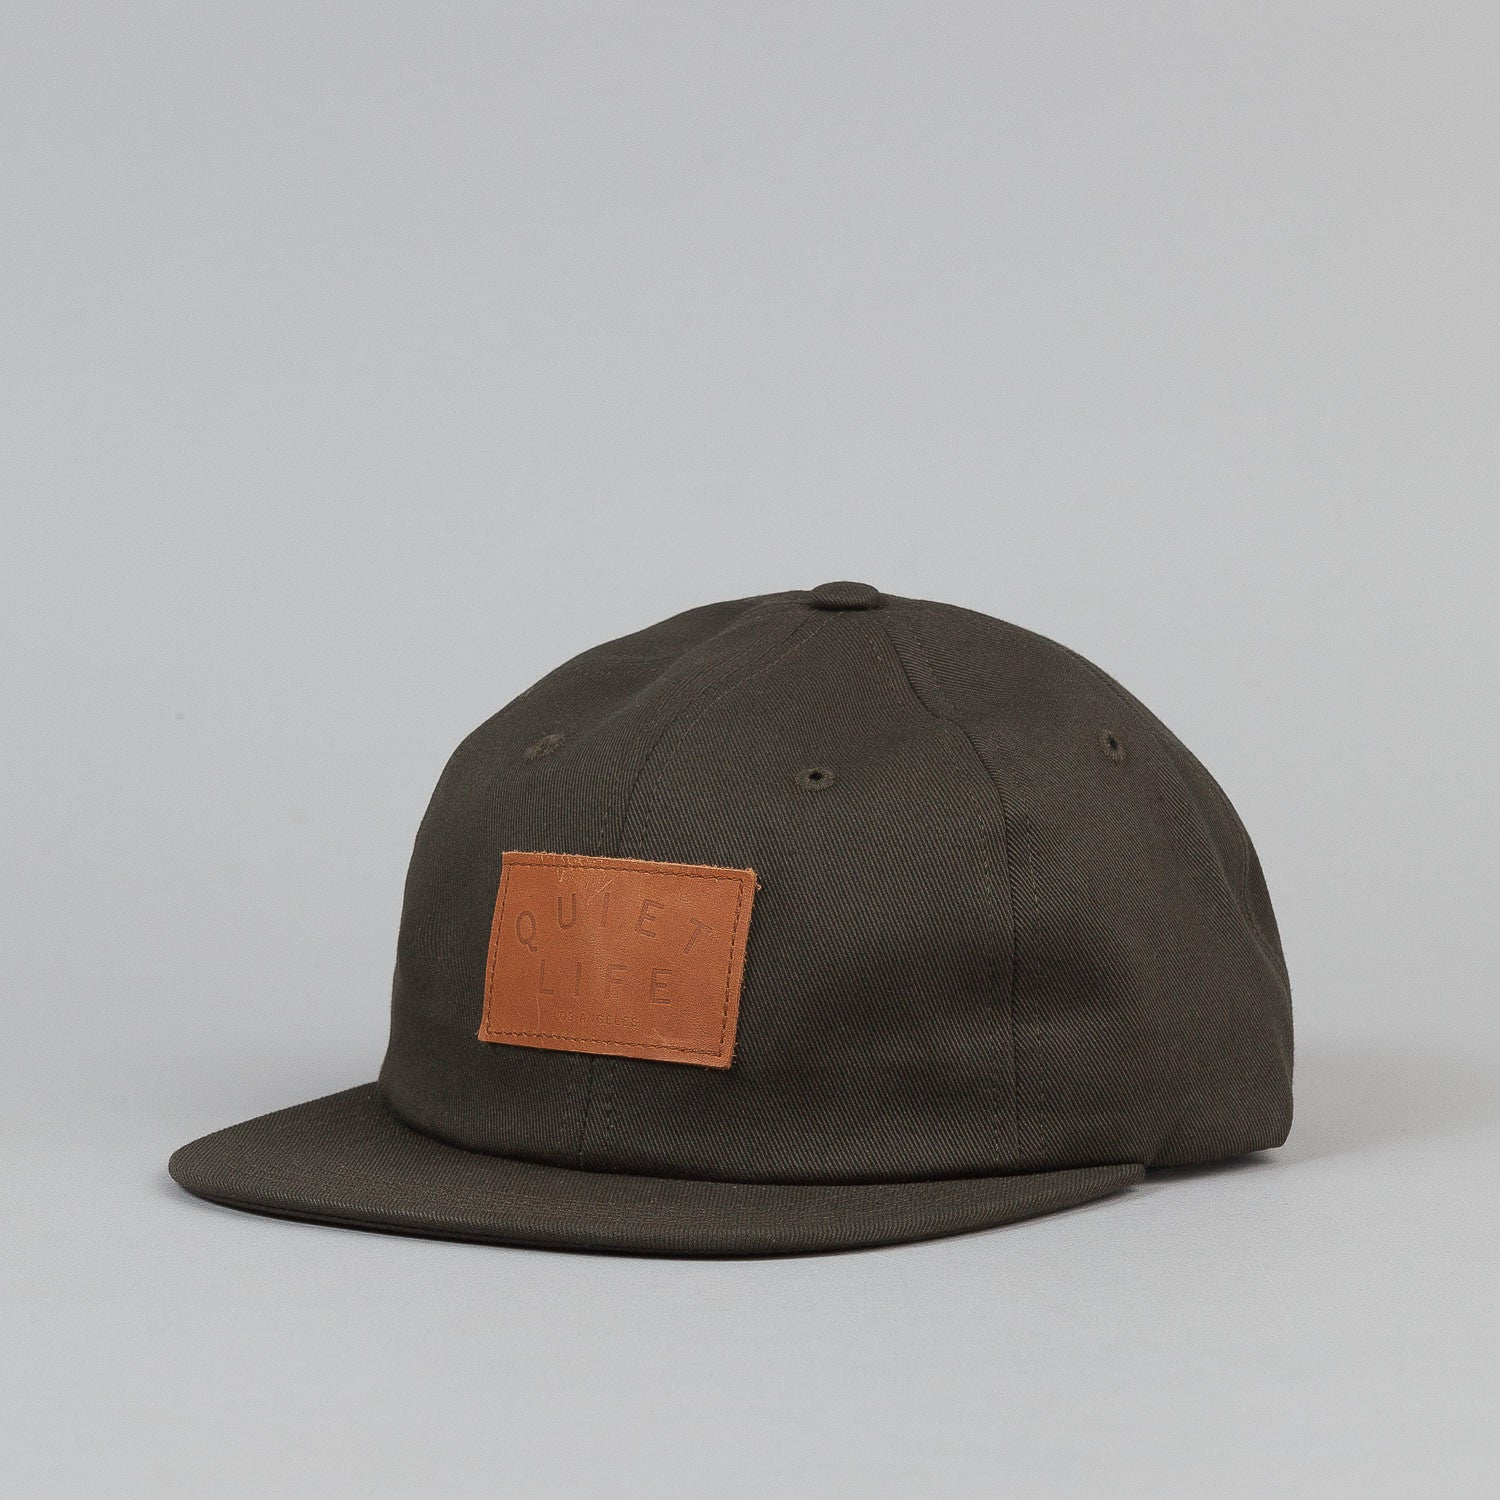 The Quiet Life Field Polo Cap